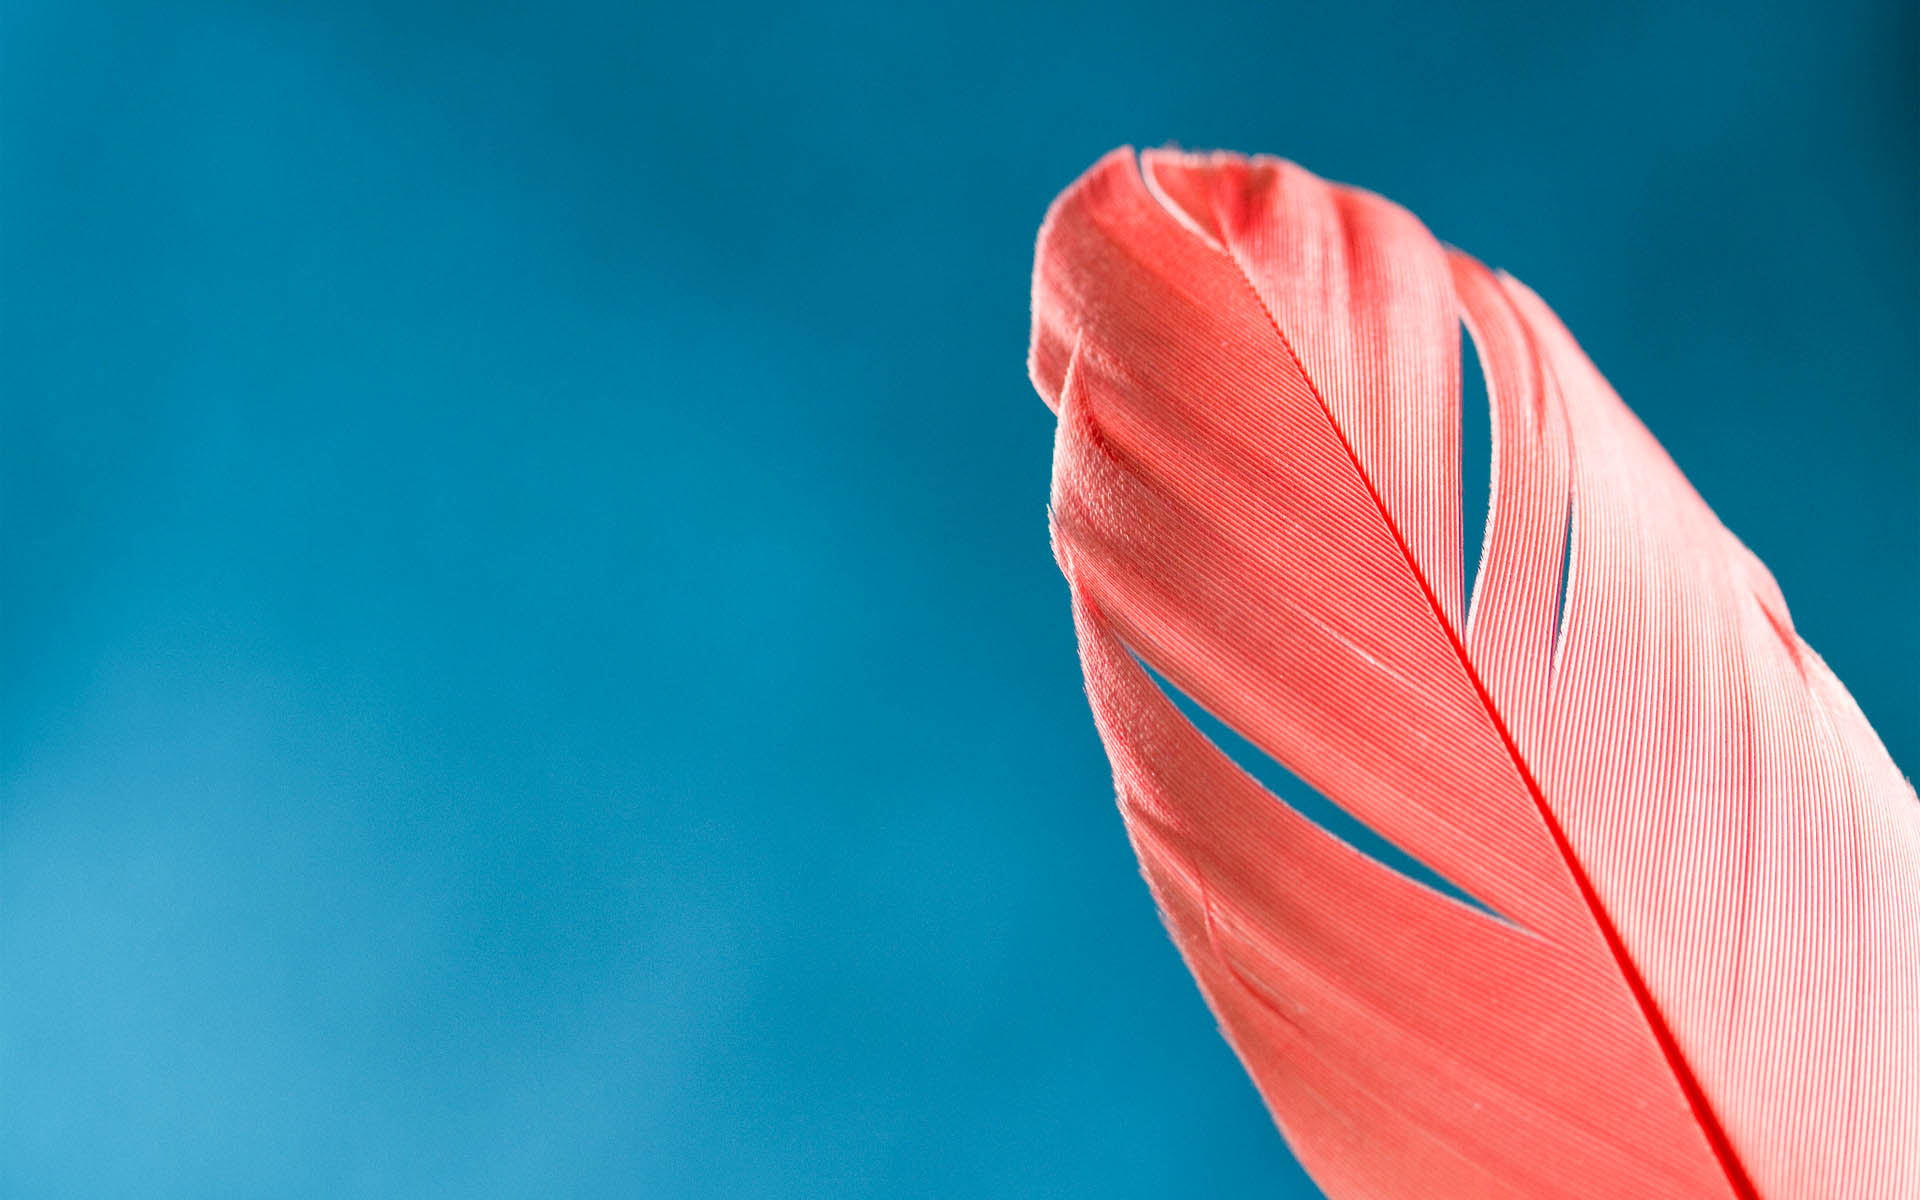 Feather Amazing High Definition Wallpapers 2015 - All HD ...